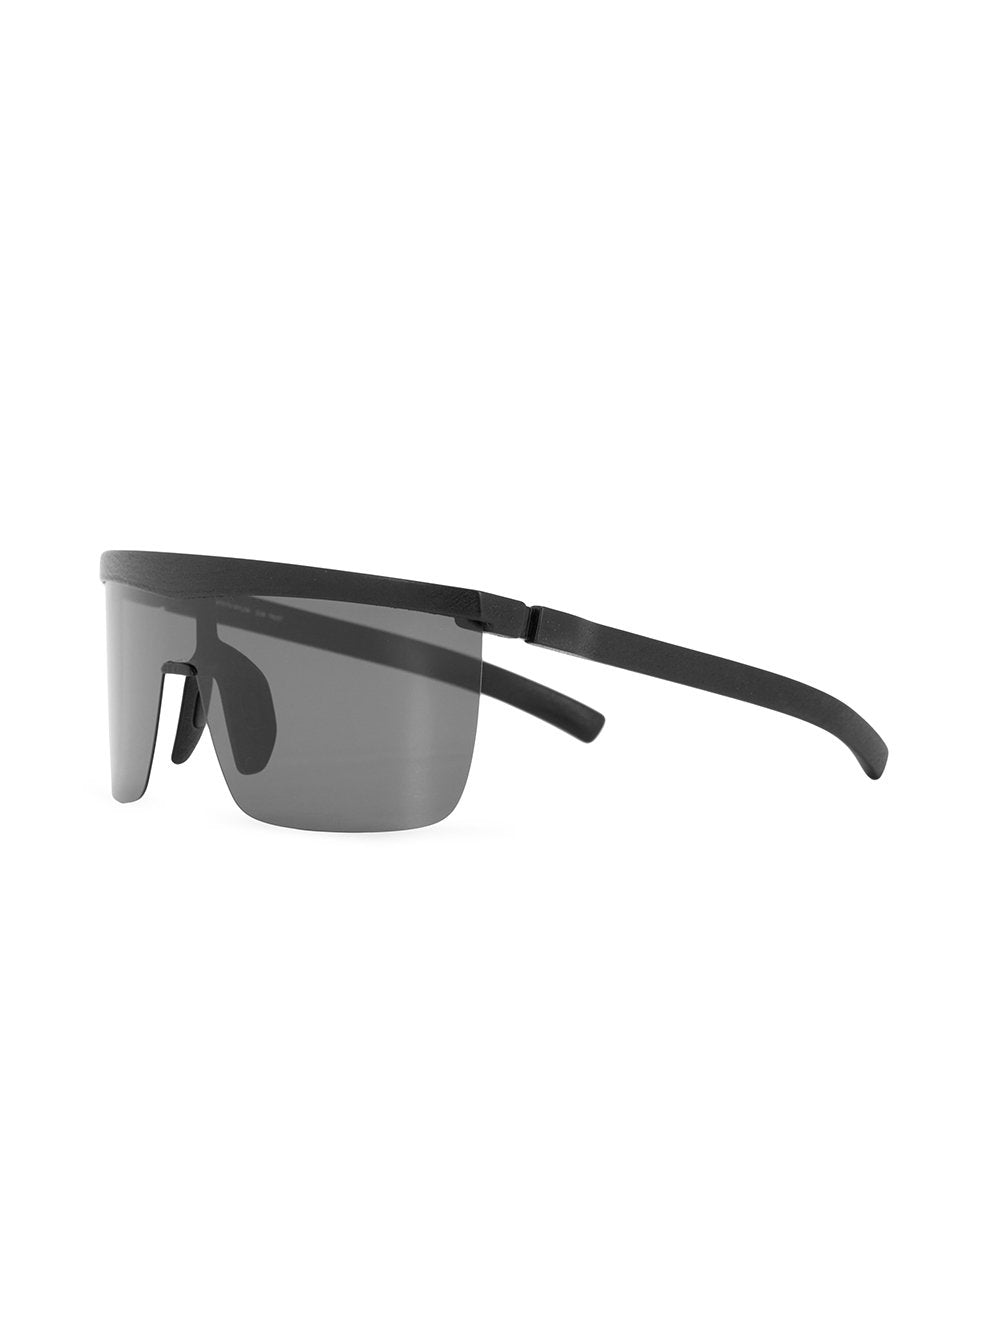 Mykita Mylon Black Trust Sunglasses - 2